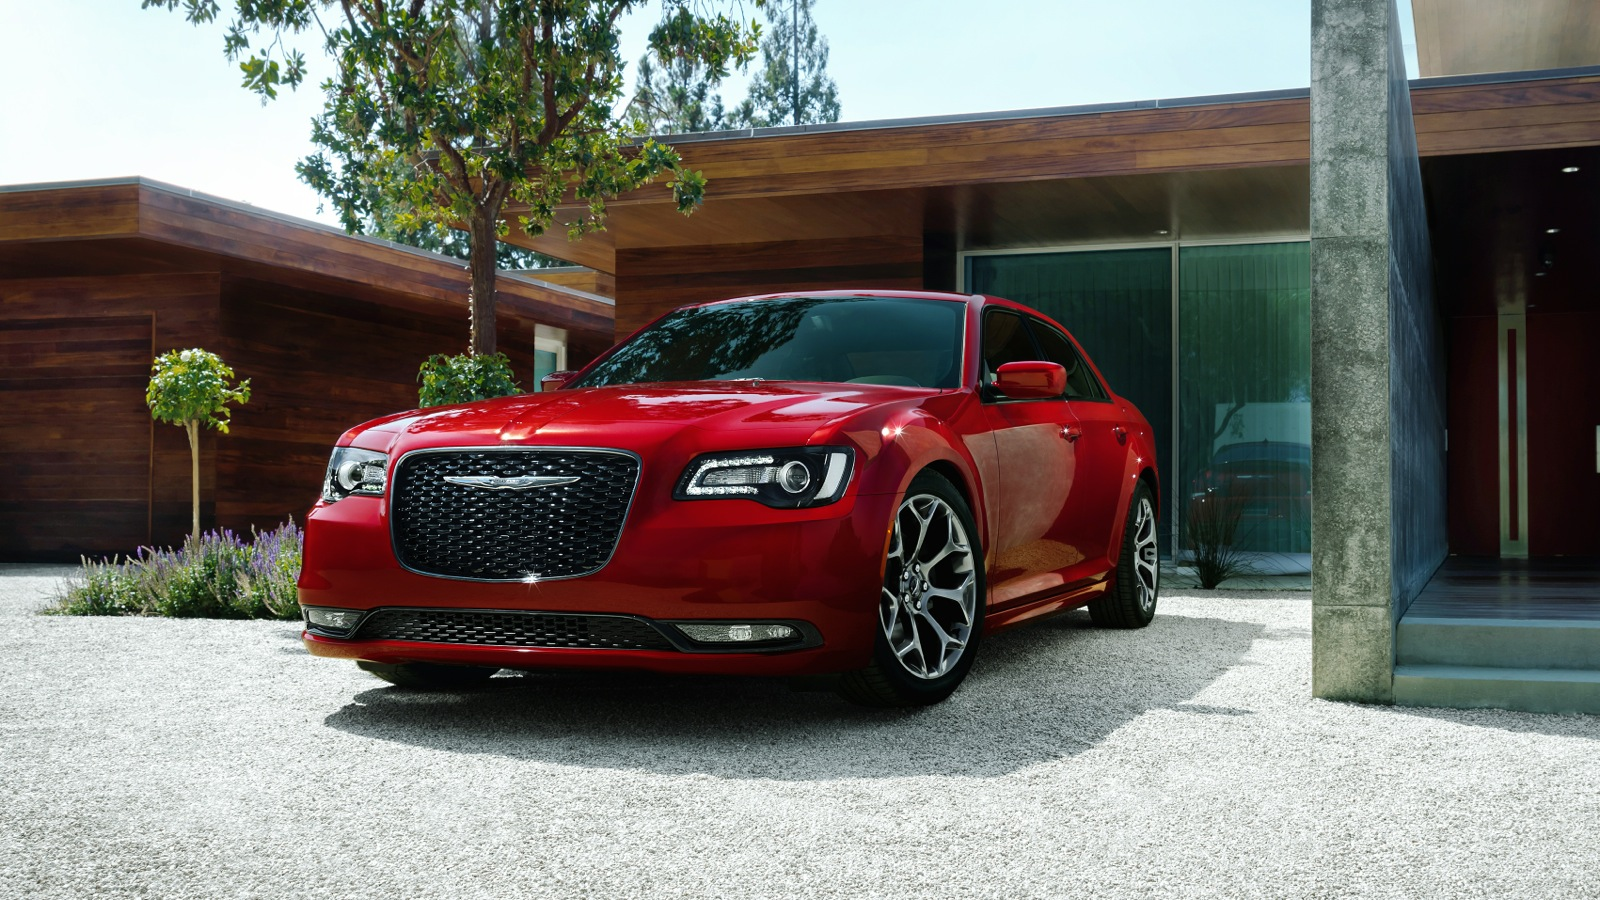 2015 chrysler 300 revealed large sedan facelifted photos 1 of 33. Black Bedroom Furniture Sets. Home Design Ideas